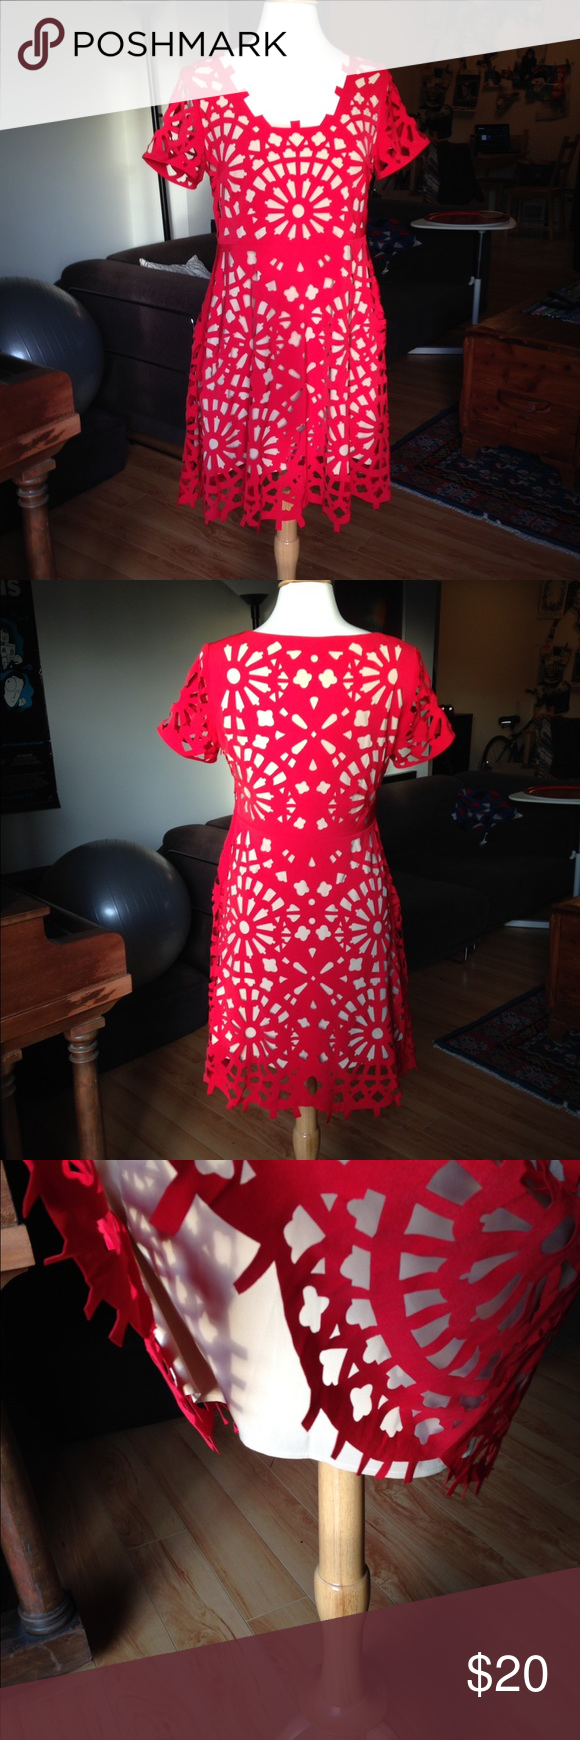 Red cut-out design party dress Super cute red party dress. Double-layered with nude attached lining. Outer red layer is actually cutout (like a paper snowflake). I'm not sure what brand this is because there is no tag. Dresses Mini